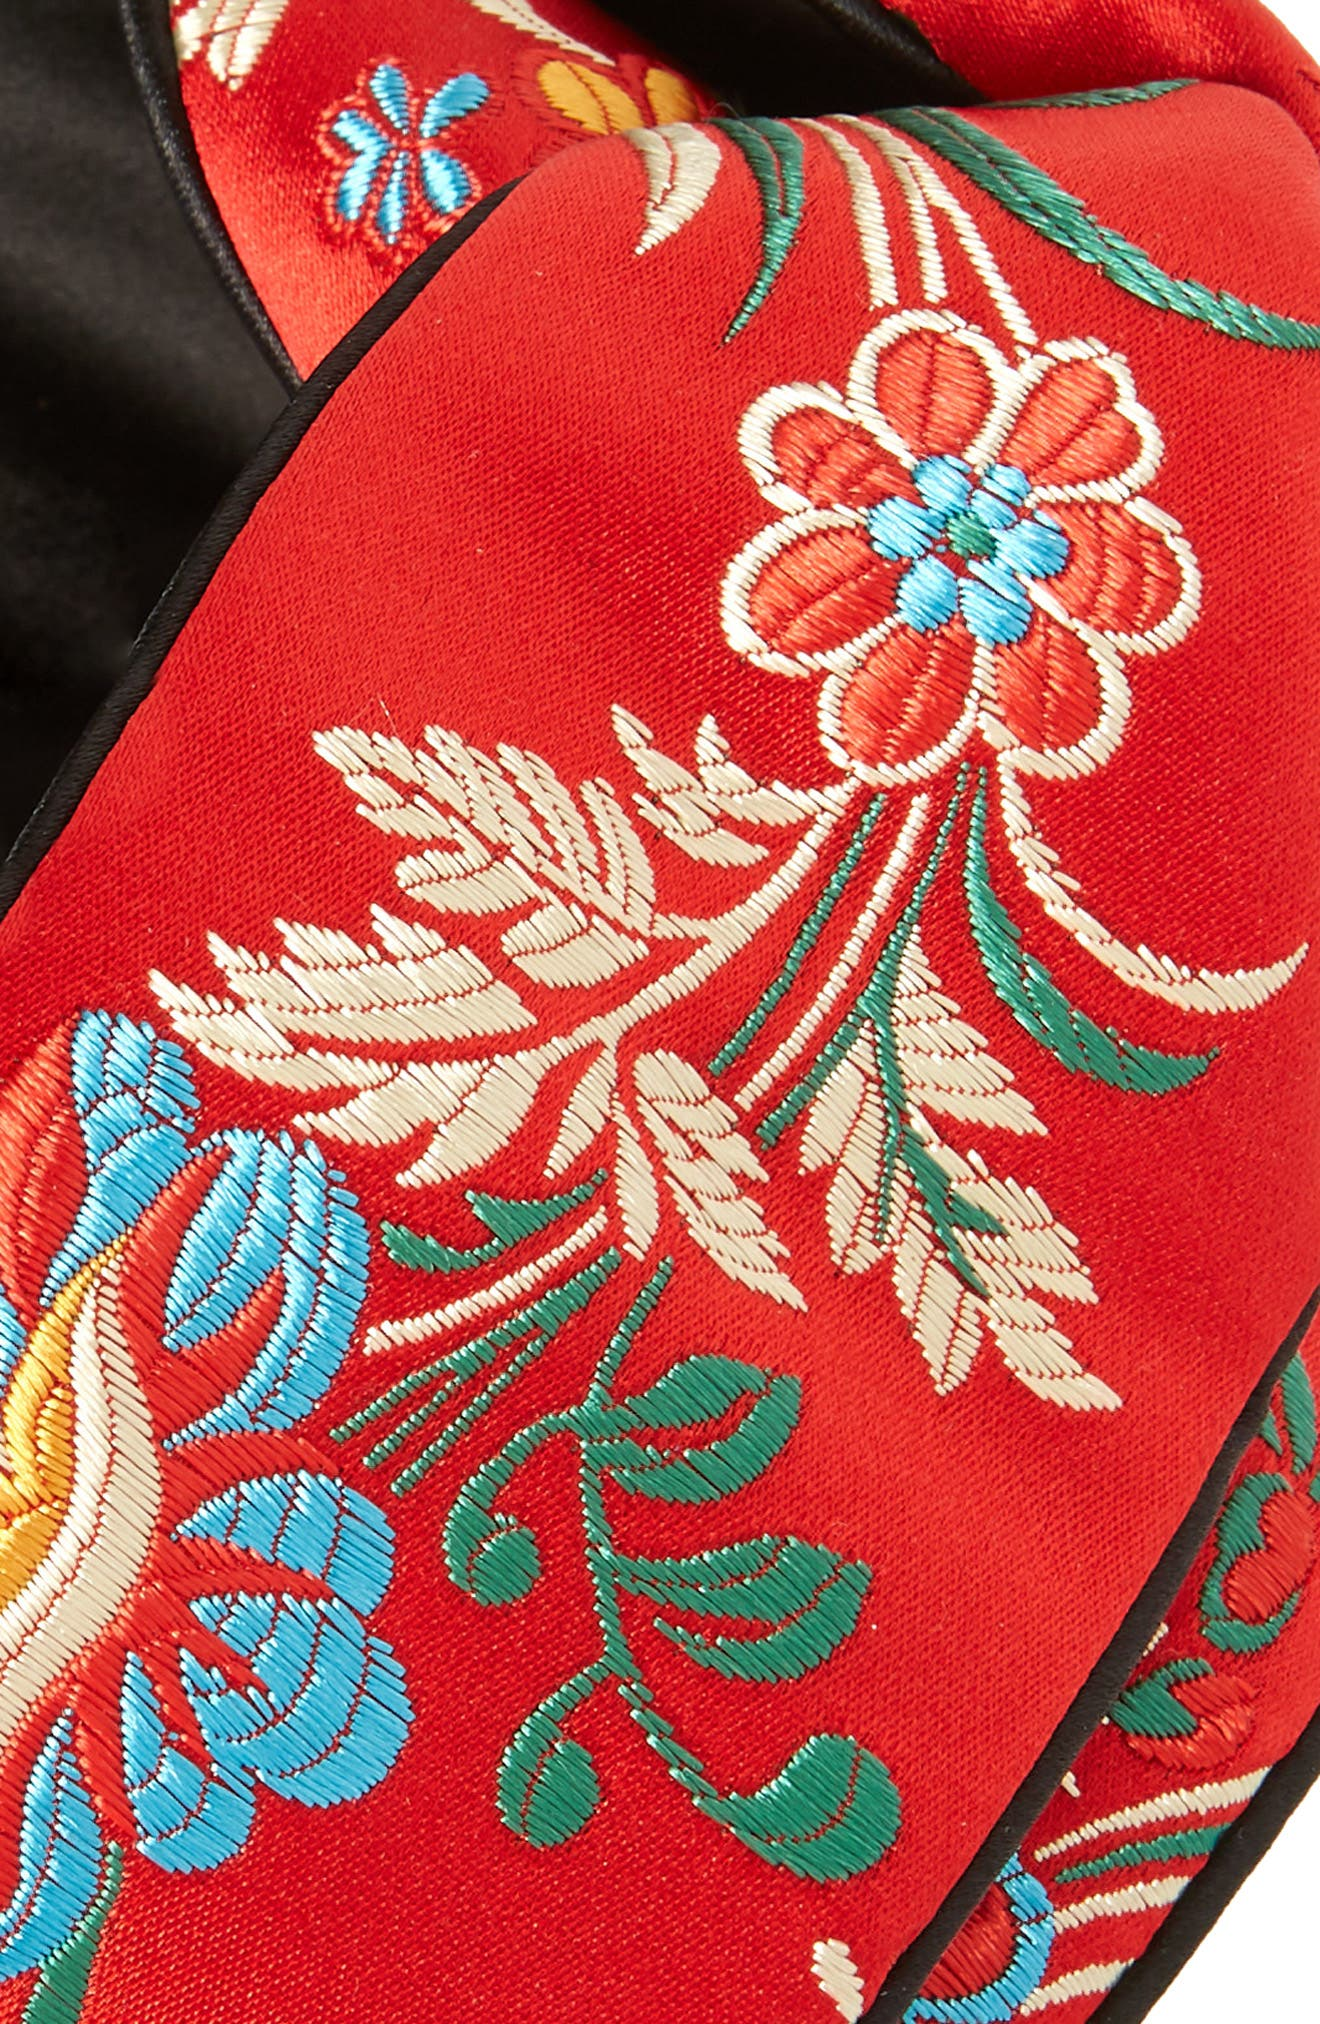 Aghila Embroidered Headband,                             Alternate thumbnail 2, color,                             FLAME